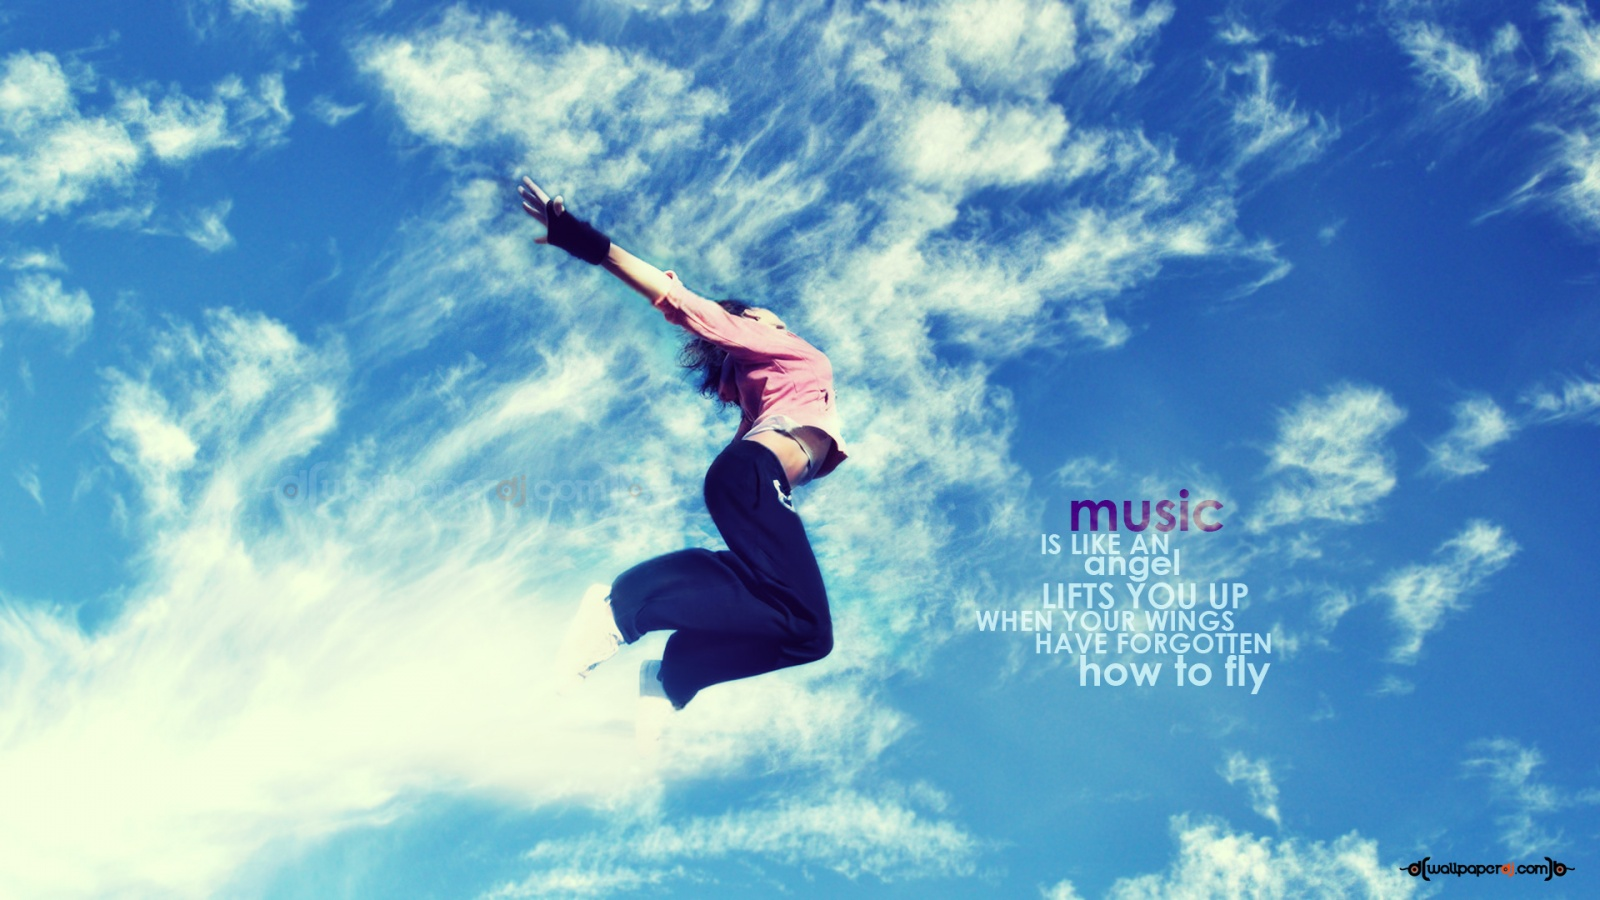 Let The Music Lift You Up  HD and Wide Wallpapers